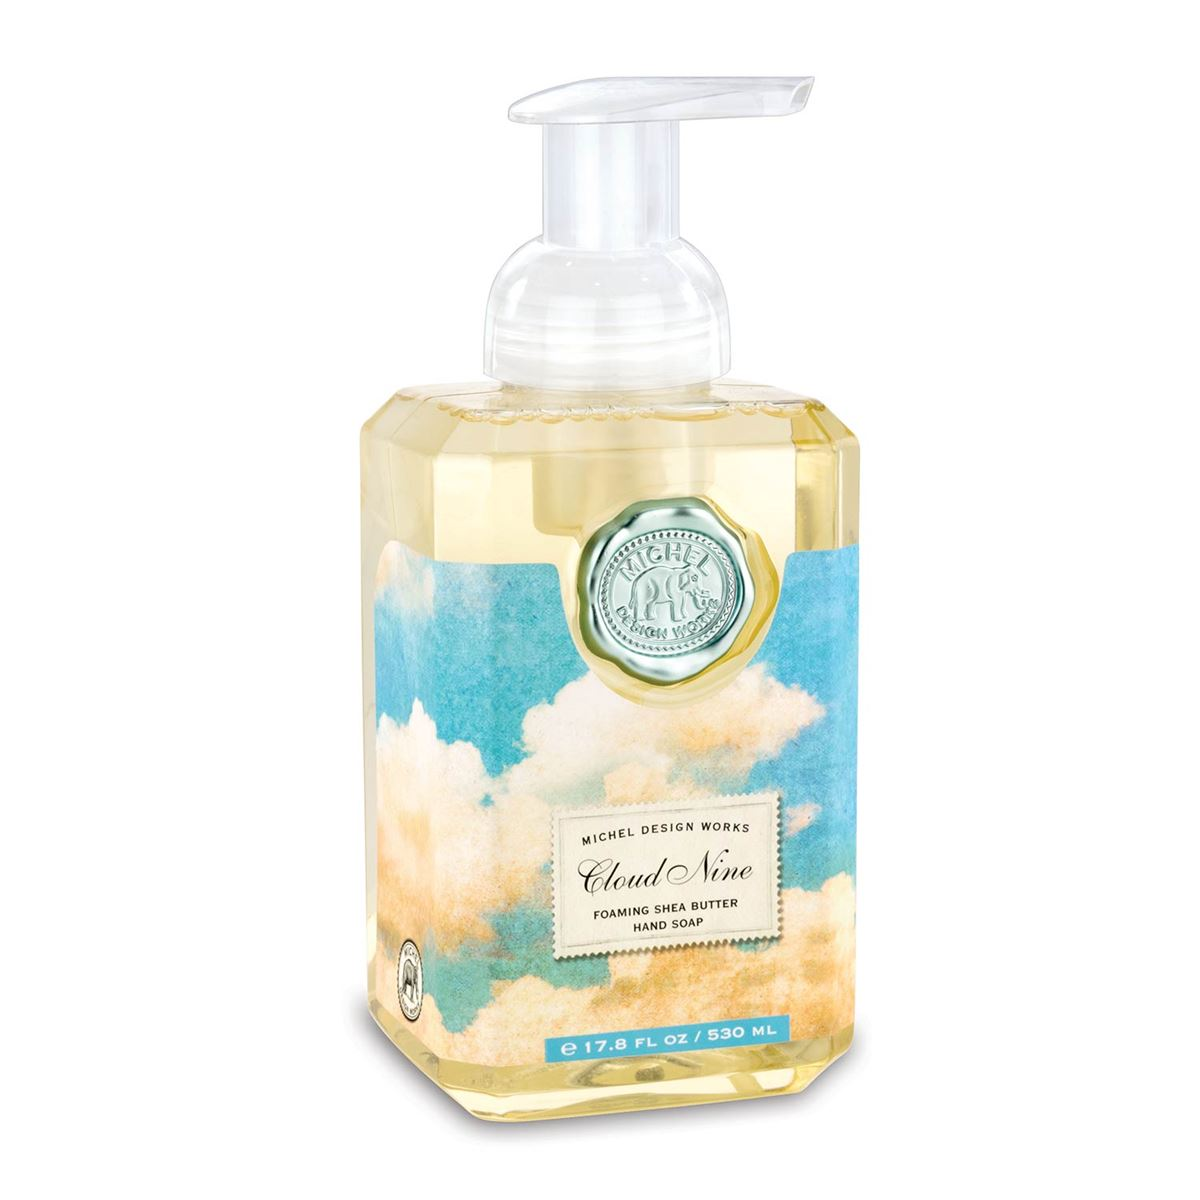 Foaming Hand Soap By Michel Design Works Cloud Nine